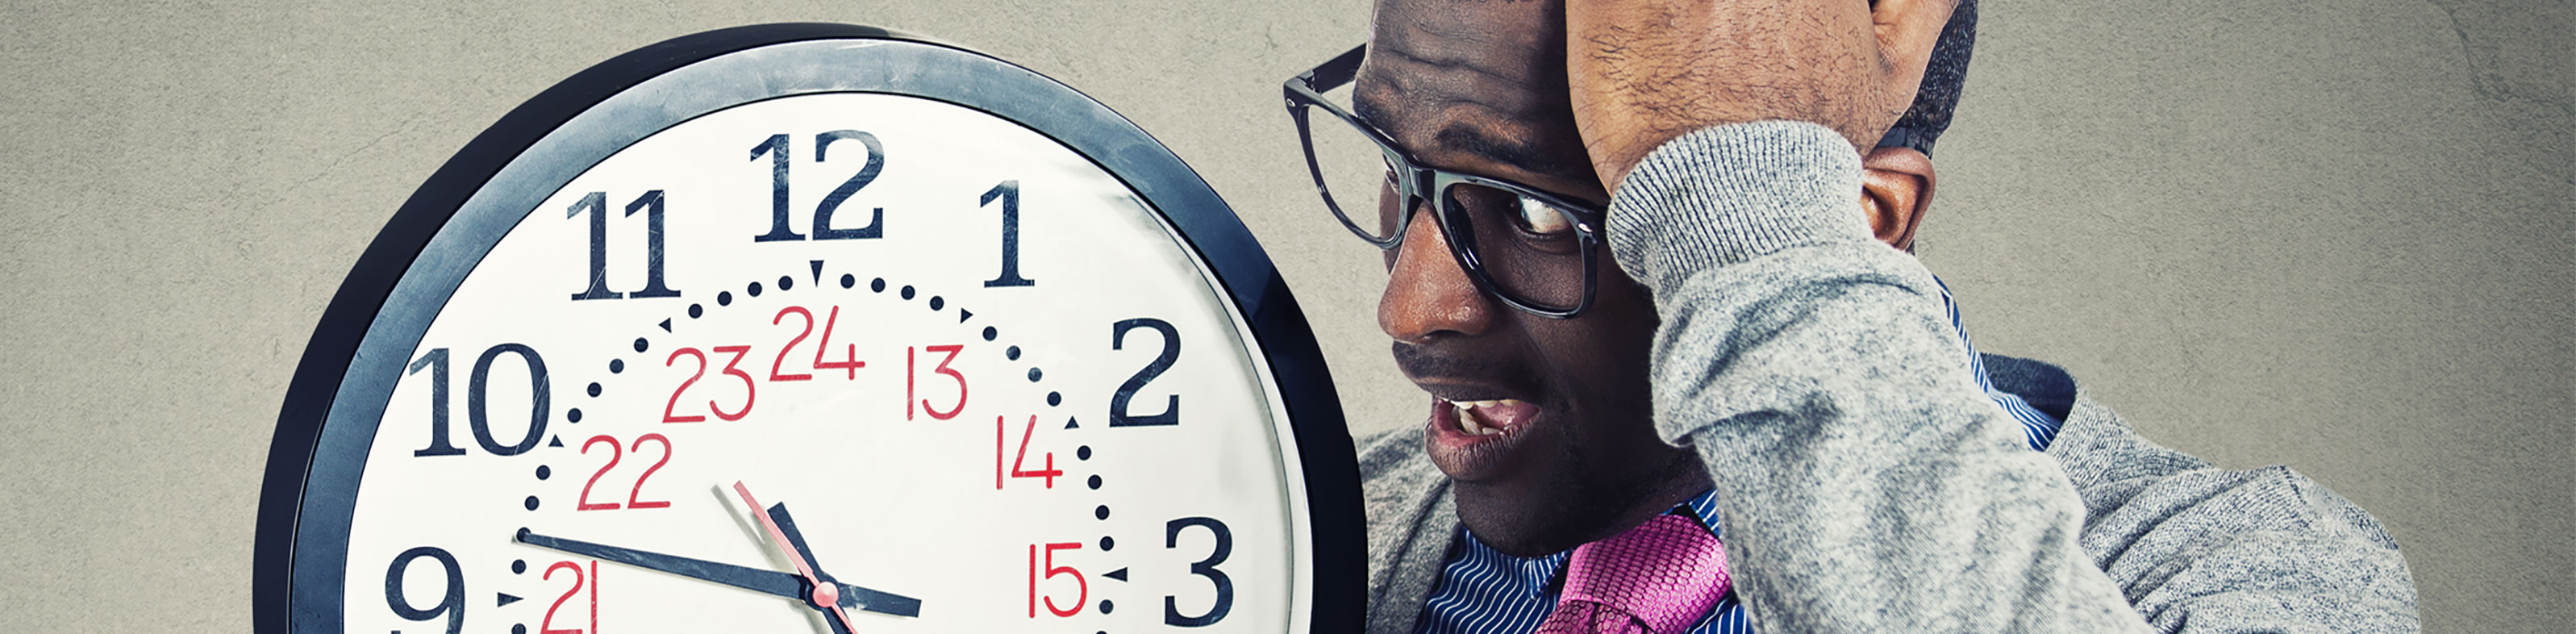 Helping your call center agents with time management